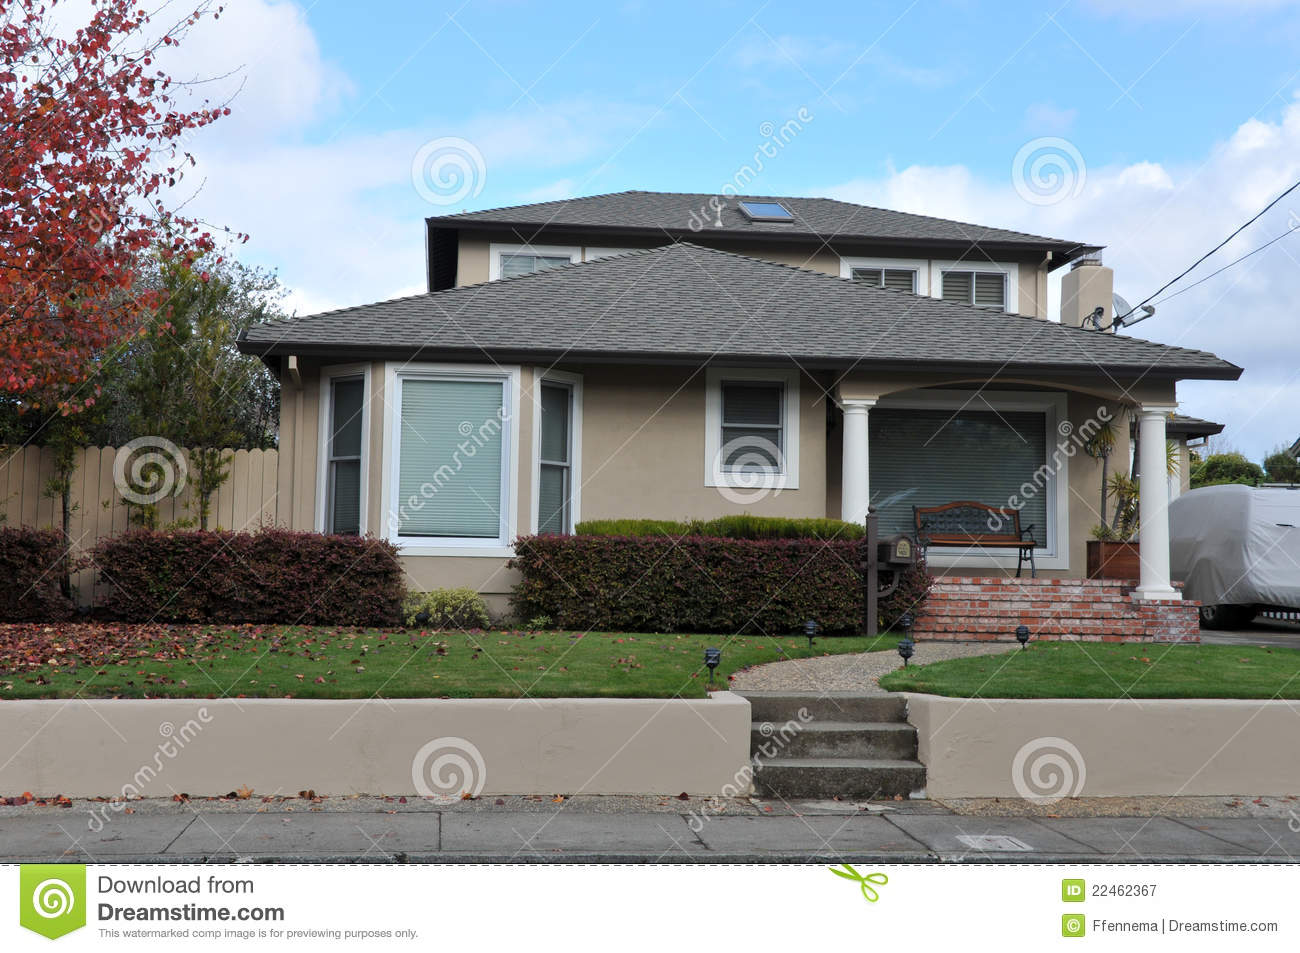 Single Family House One Story With Walkway Royalty Free Stock Photography Image 22462367